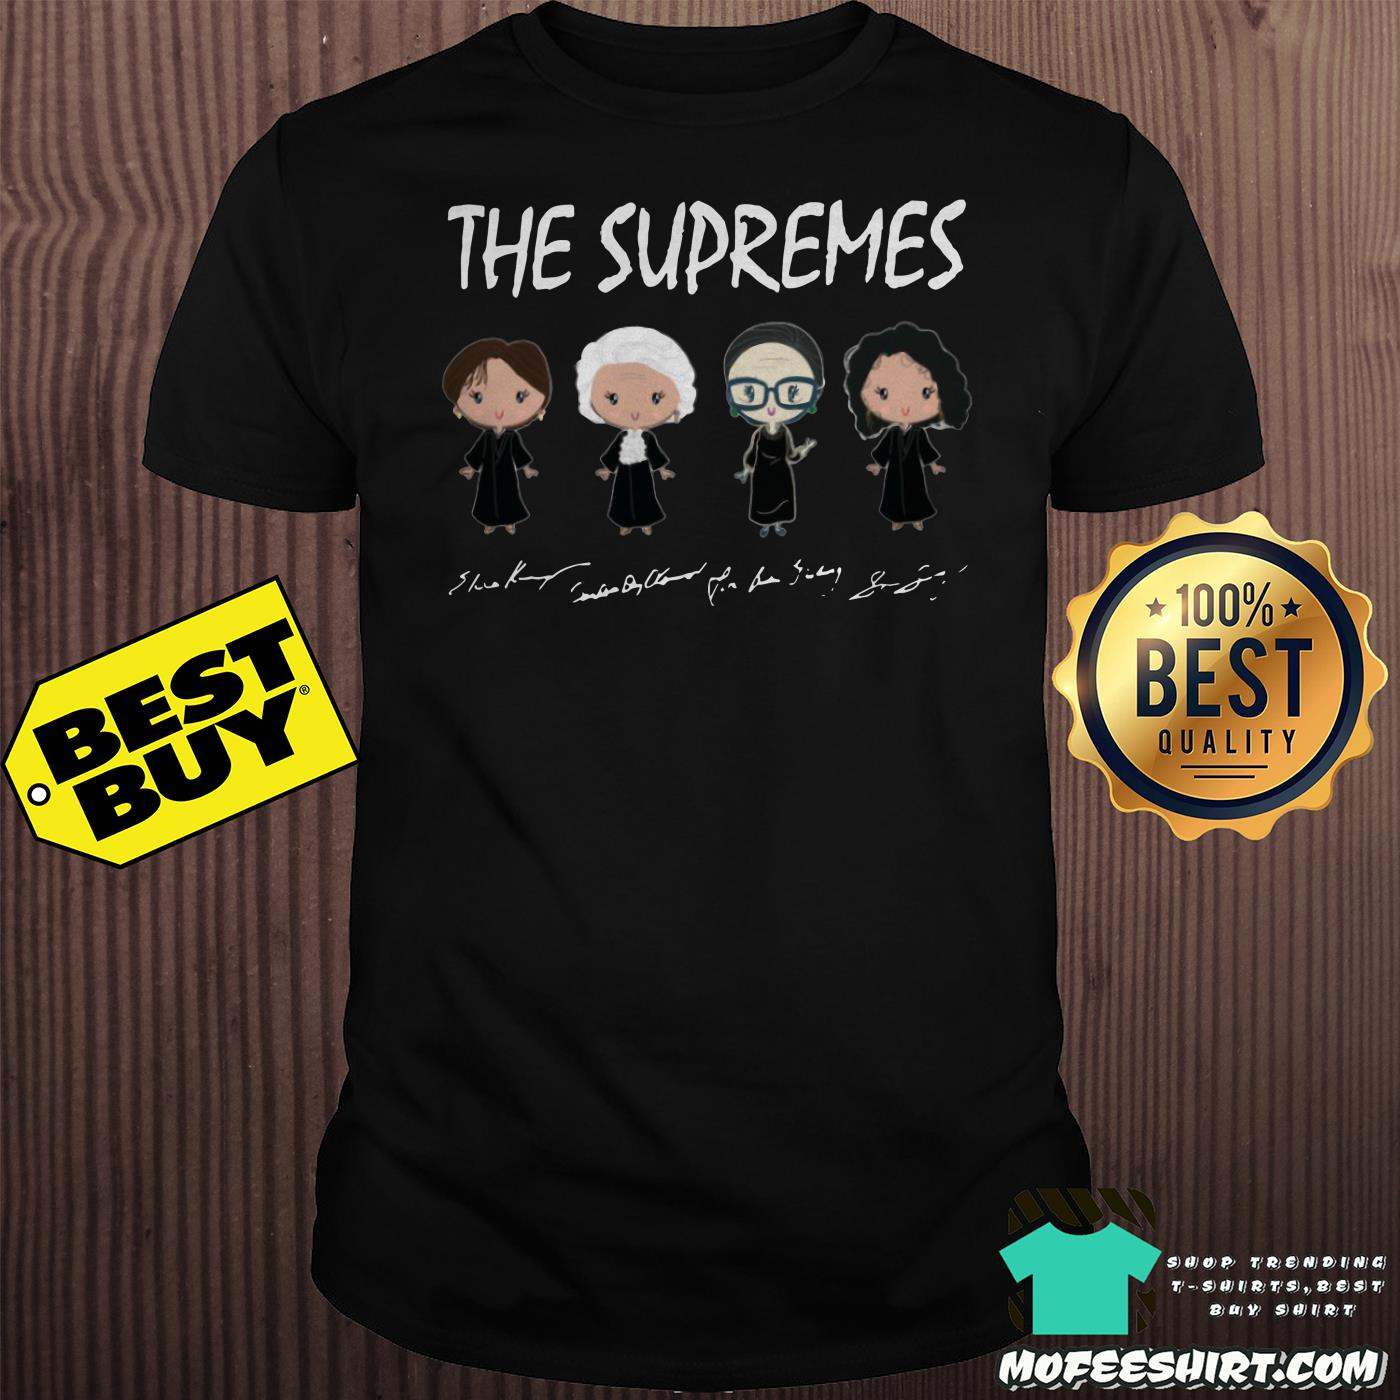 the supremes ruth bader ginsburg signatures shirt - The supremes Ruth Bader Ginsburg signatures shirt